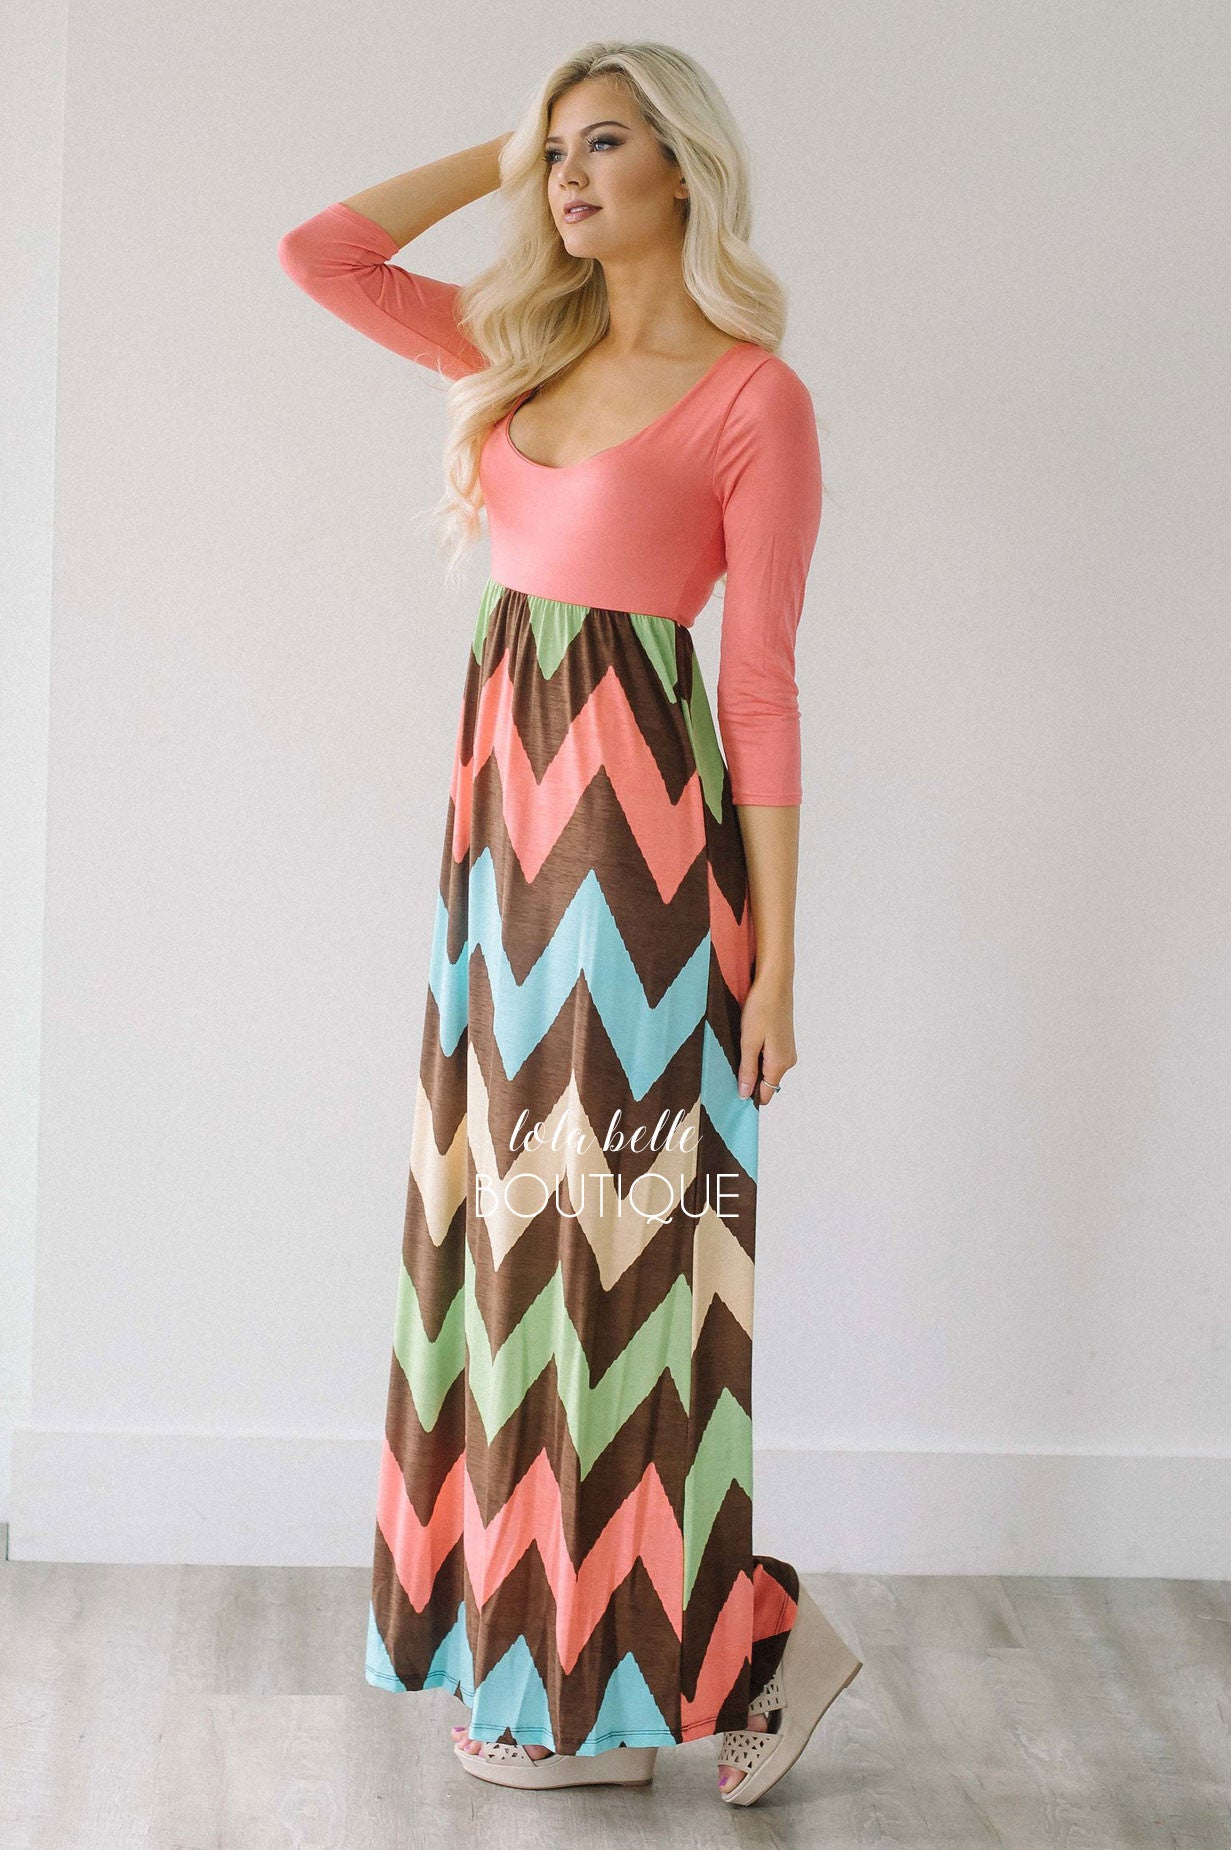 a64ca0620ff Coral 3 4 Length Sleeve Chevron Maxi Dress – Shop Lola Belle ...